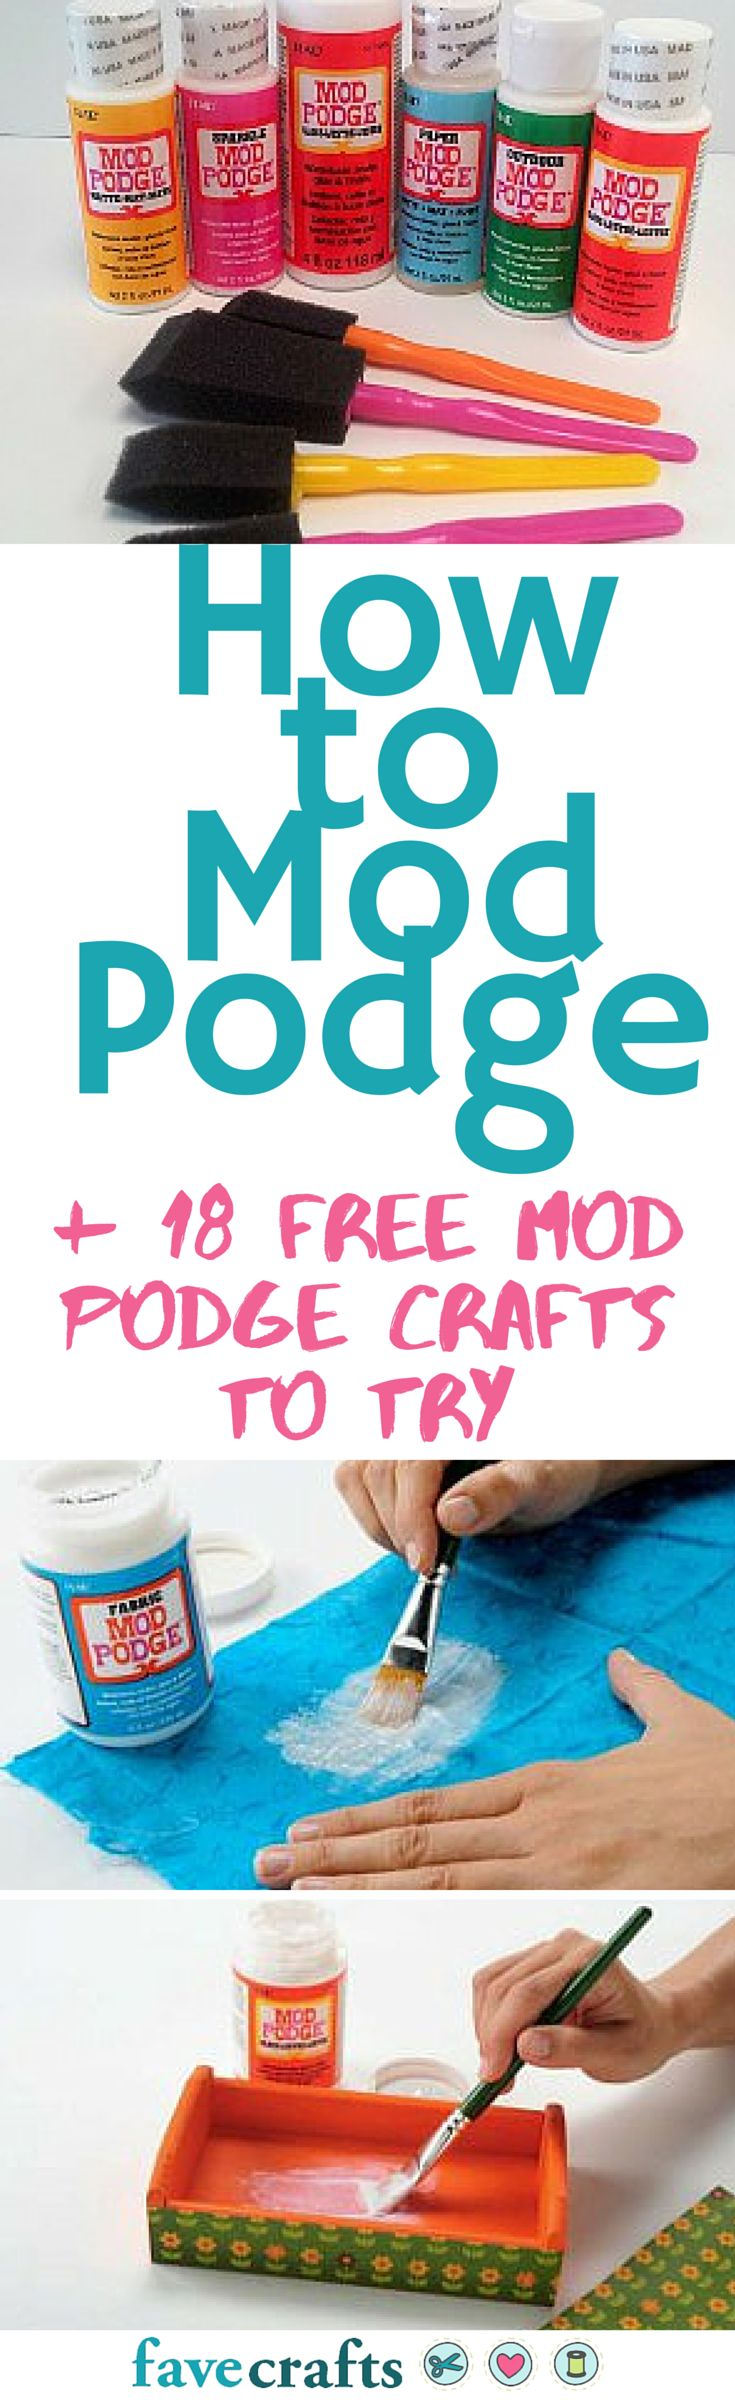 Learn how to mod podge, how to decoupage, and every other way to use mod podge out there in this full guide to mod podge ideas. Plus, 18 mod podge crafts to try!